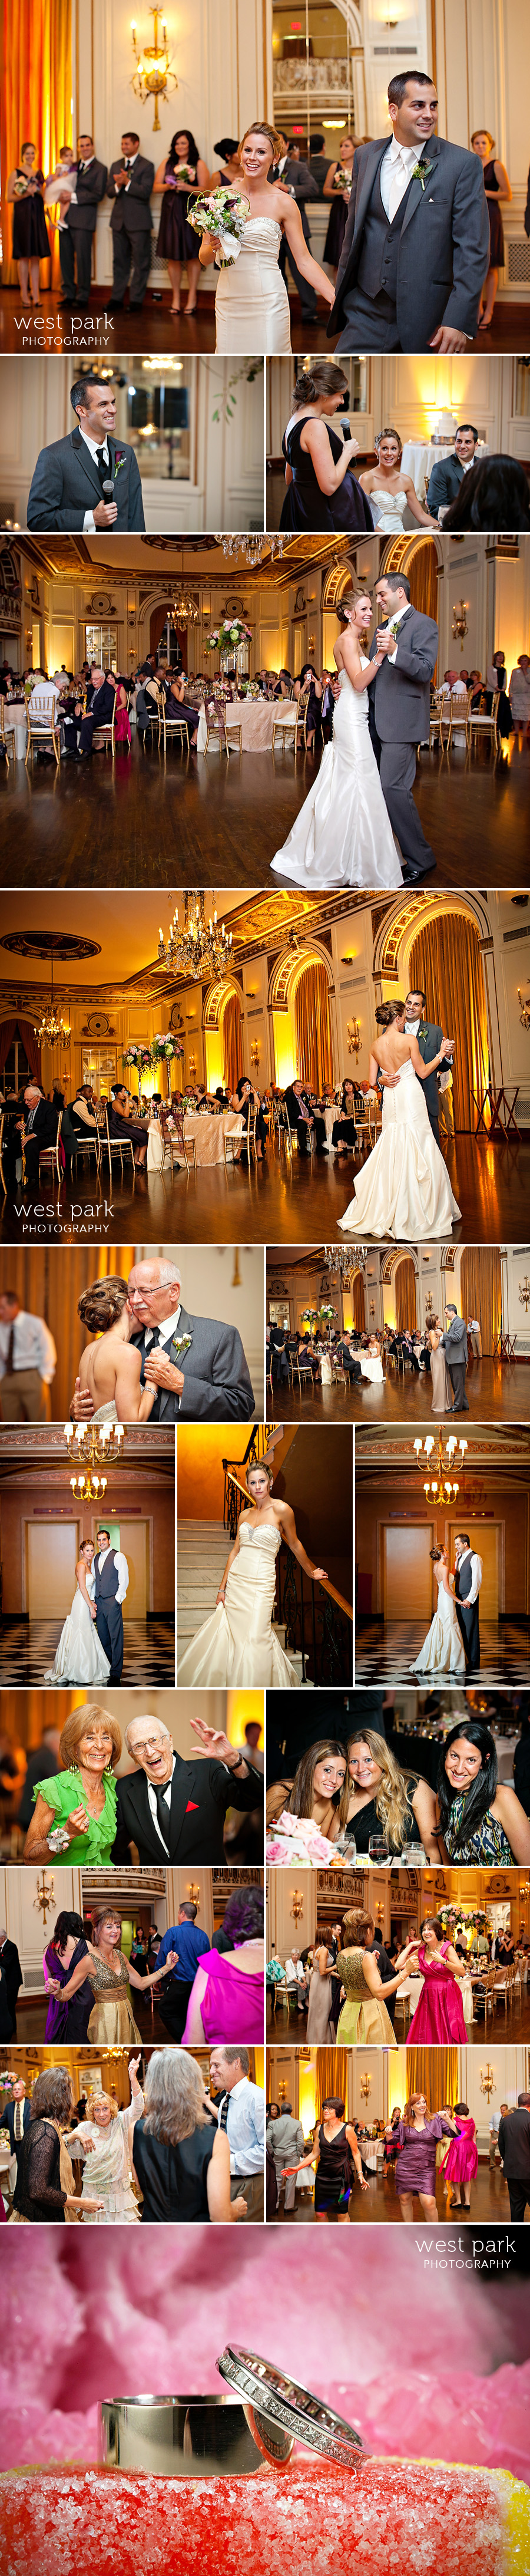 Colony Club Detroit Wedding photo 05 Lyndsi + Trevors Colony Club Wedding